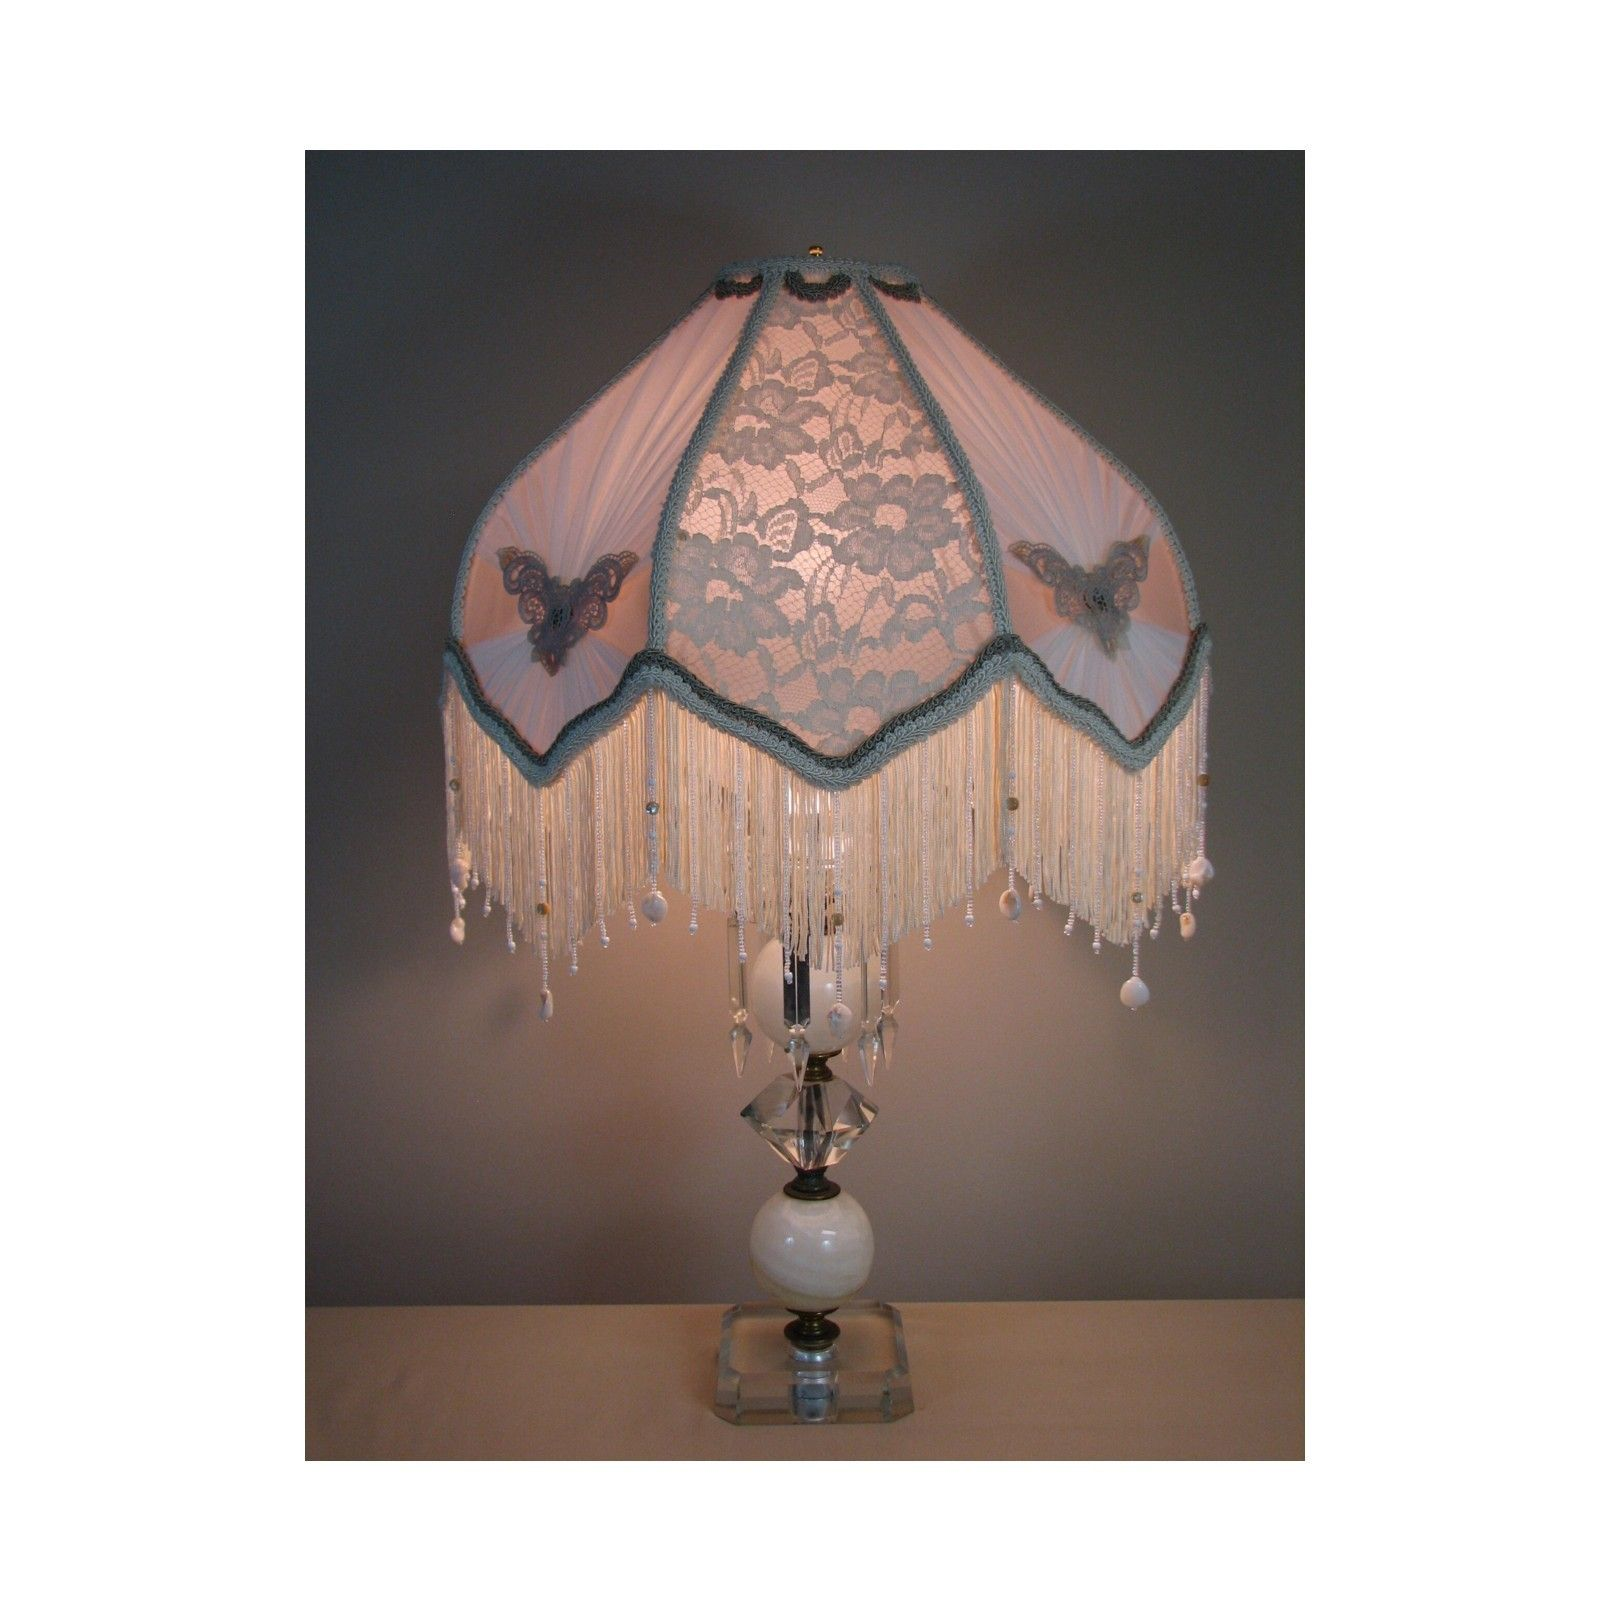 Vintage table lamp with victorian lamp shade scarlett 0405 from the suzanne michelle illuminations heirloom collection this scarlett table lamp art piece reminds me of a southern victorian era aloadofball Image collections